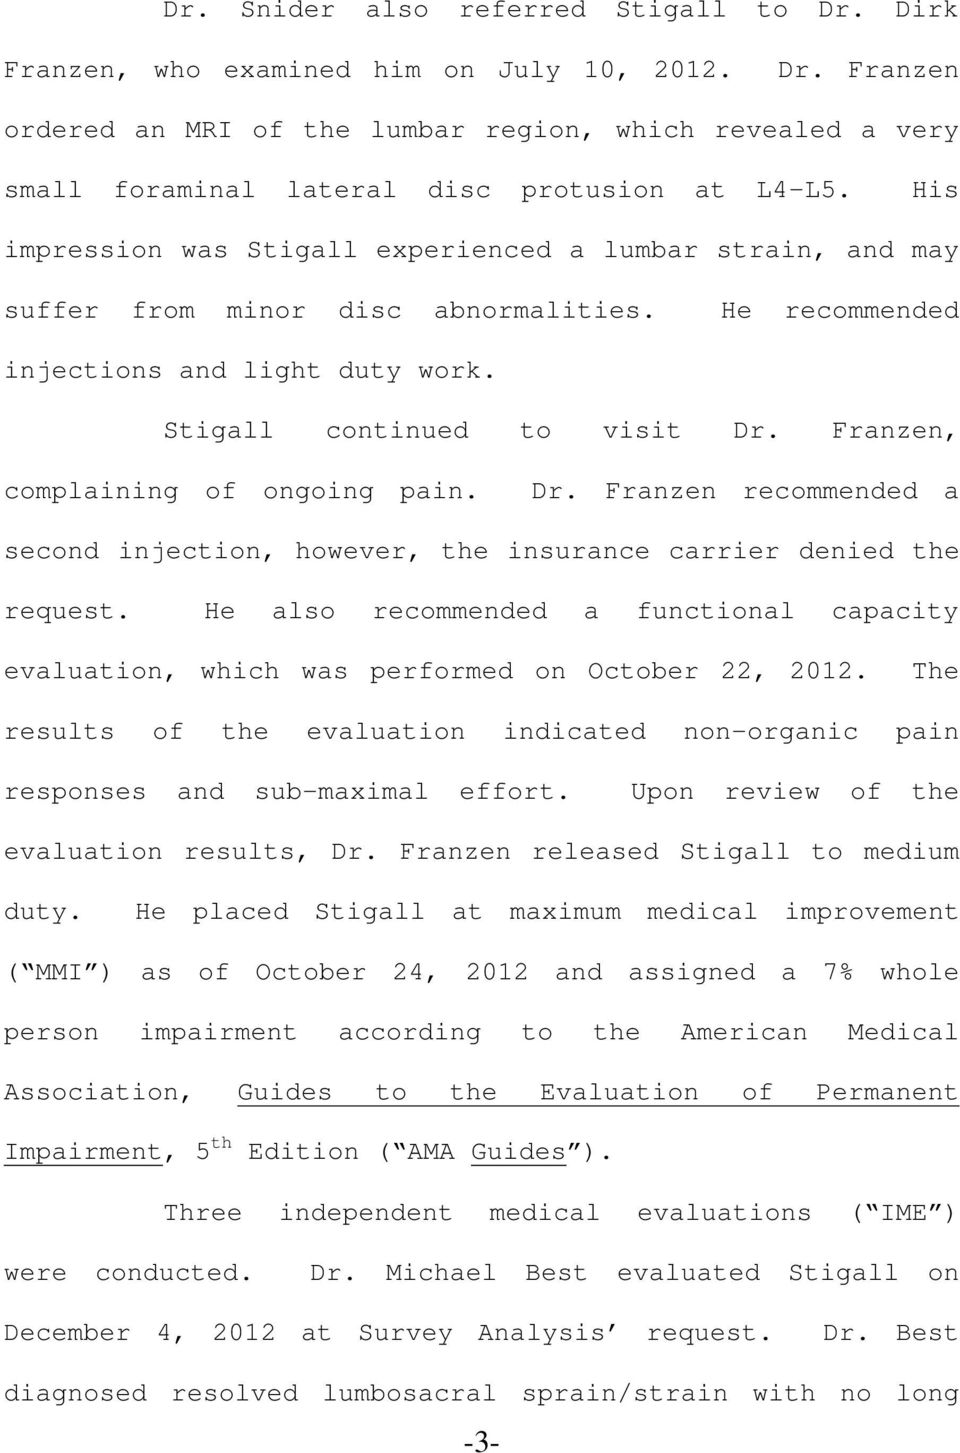 Franzen, complaining of ongoing pain. Dr. Franzen recommended a second injection, however, the insurance carrier denied the request.